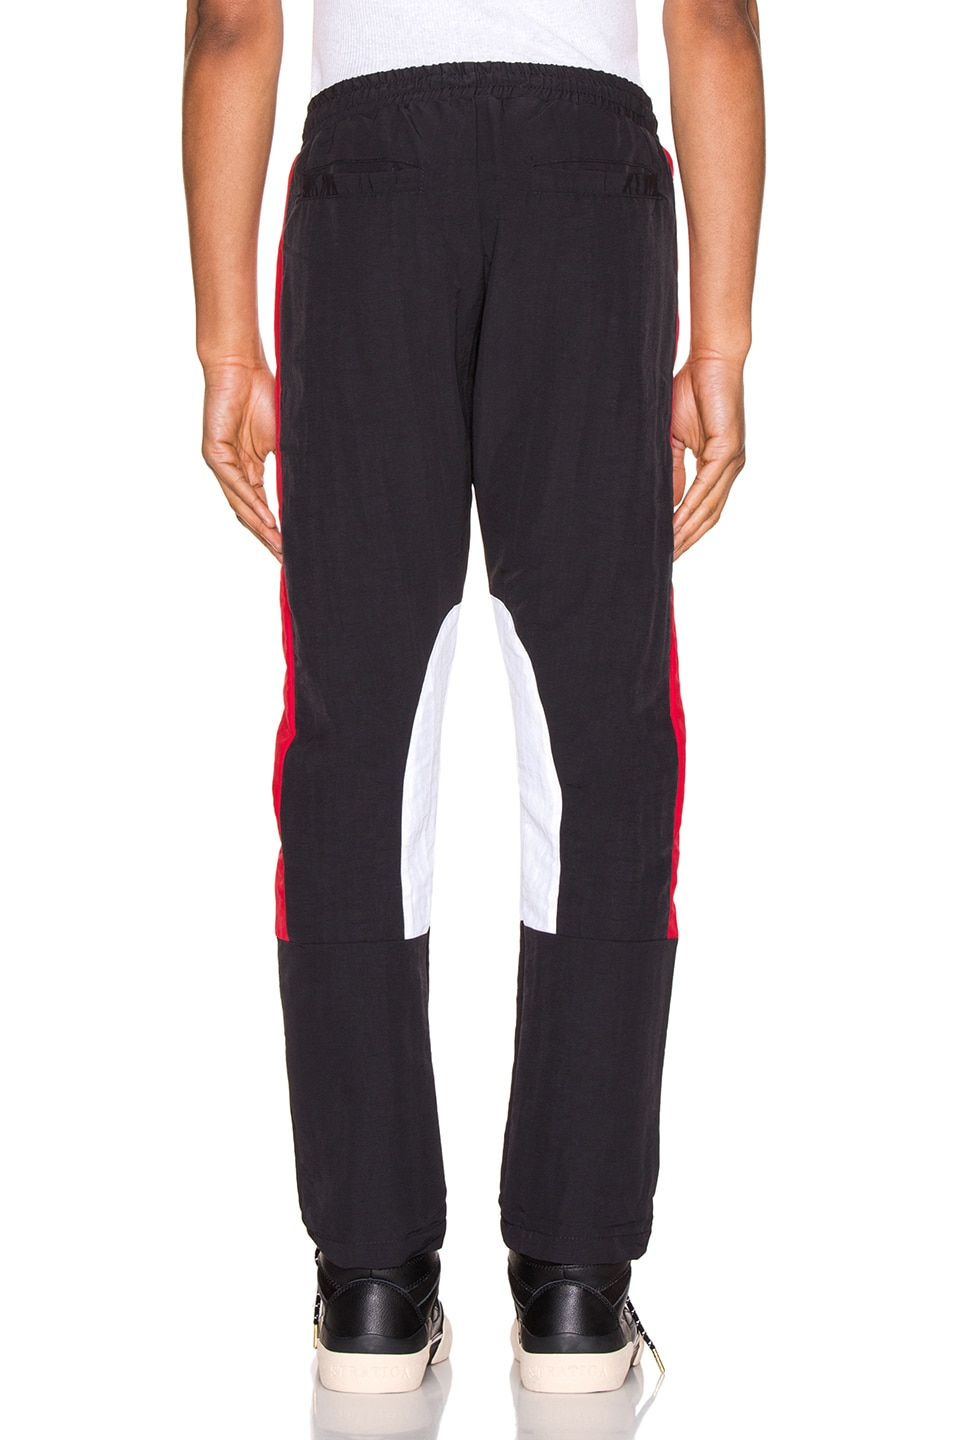 Image 3 of Rhude Rhacing Pant in Black & White & Red